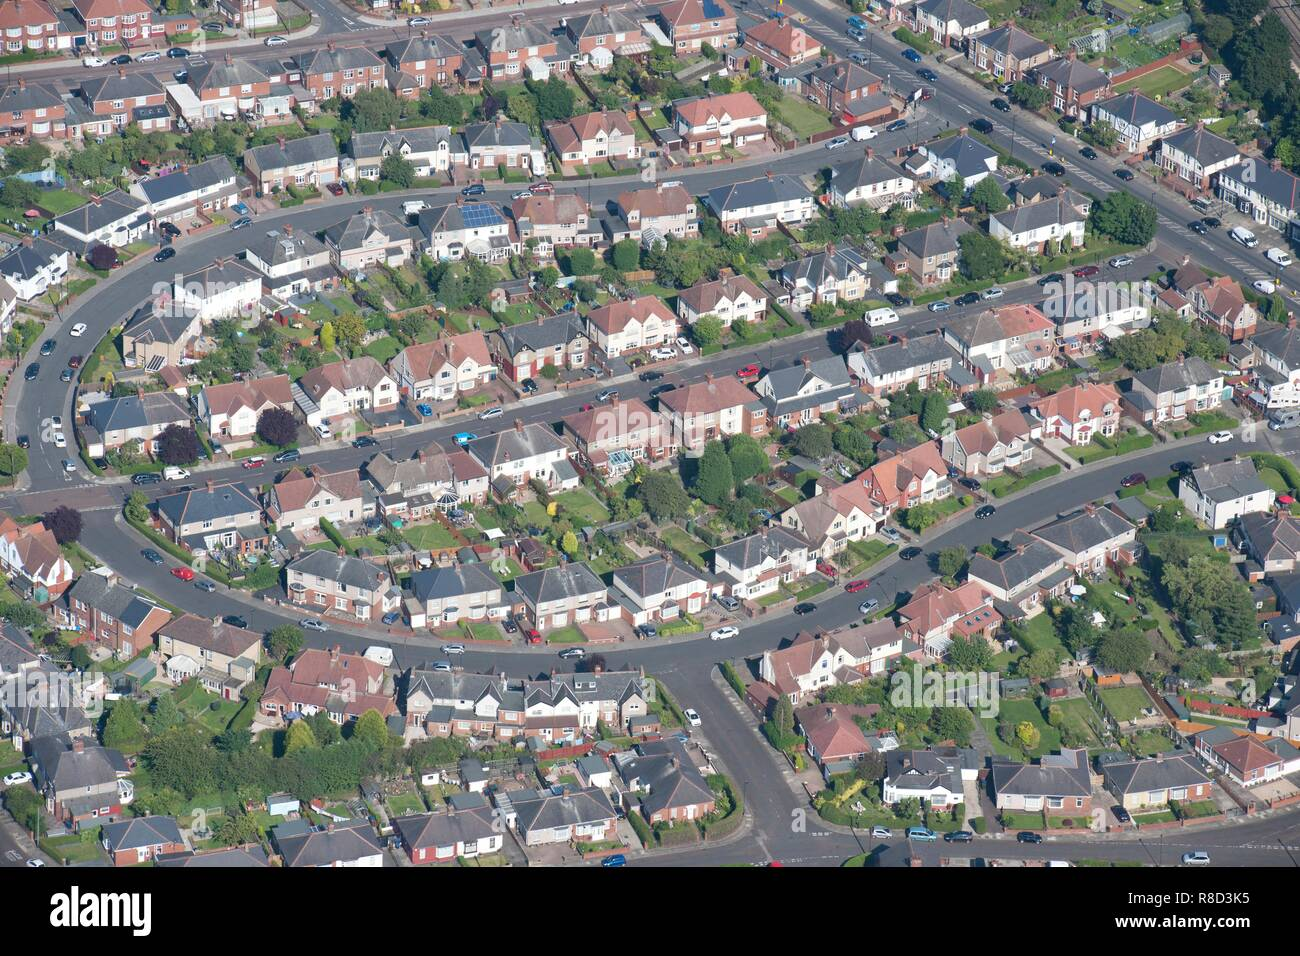 Semi-detached housing, Walkerville, Newcastle upon Tyne, 2014. - Stock Image